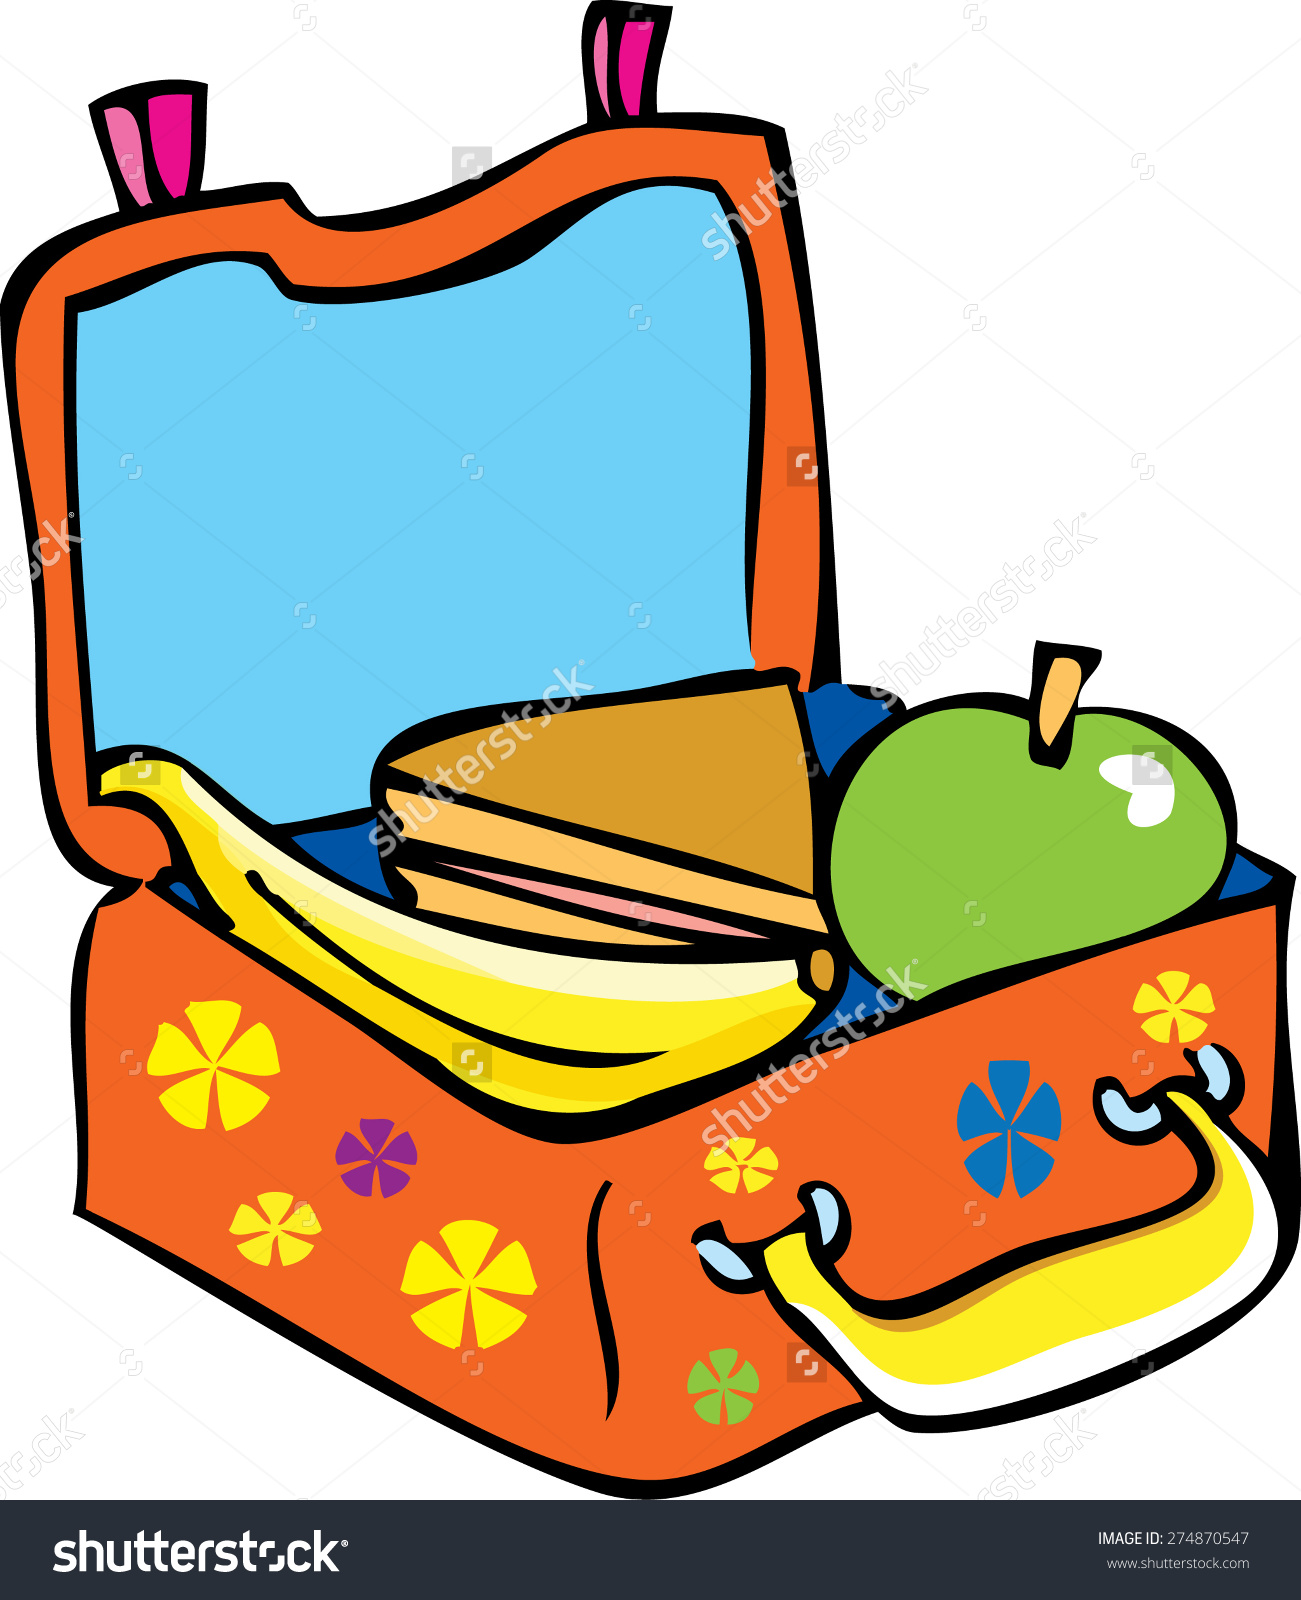 Sandwich clipart packed lunch Explore pictures cartoon bright sandwich